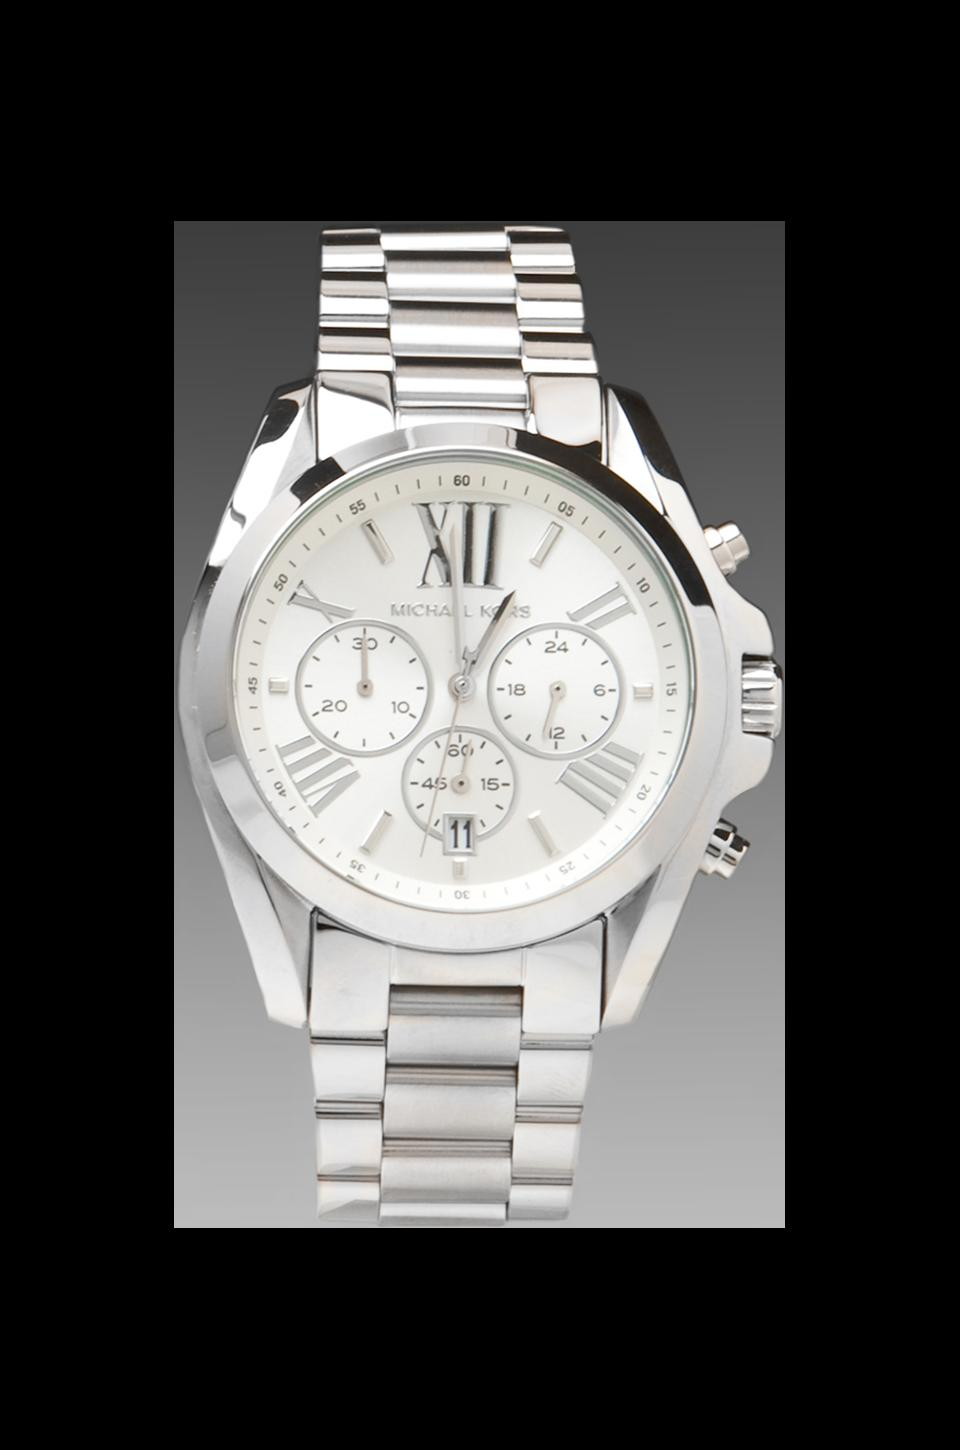 Michael Kors Bradshaw Watch in Silver